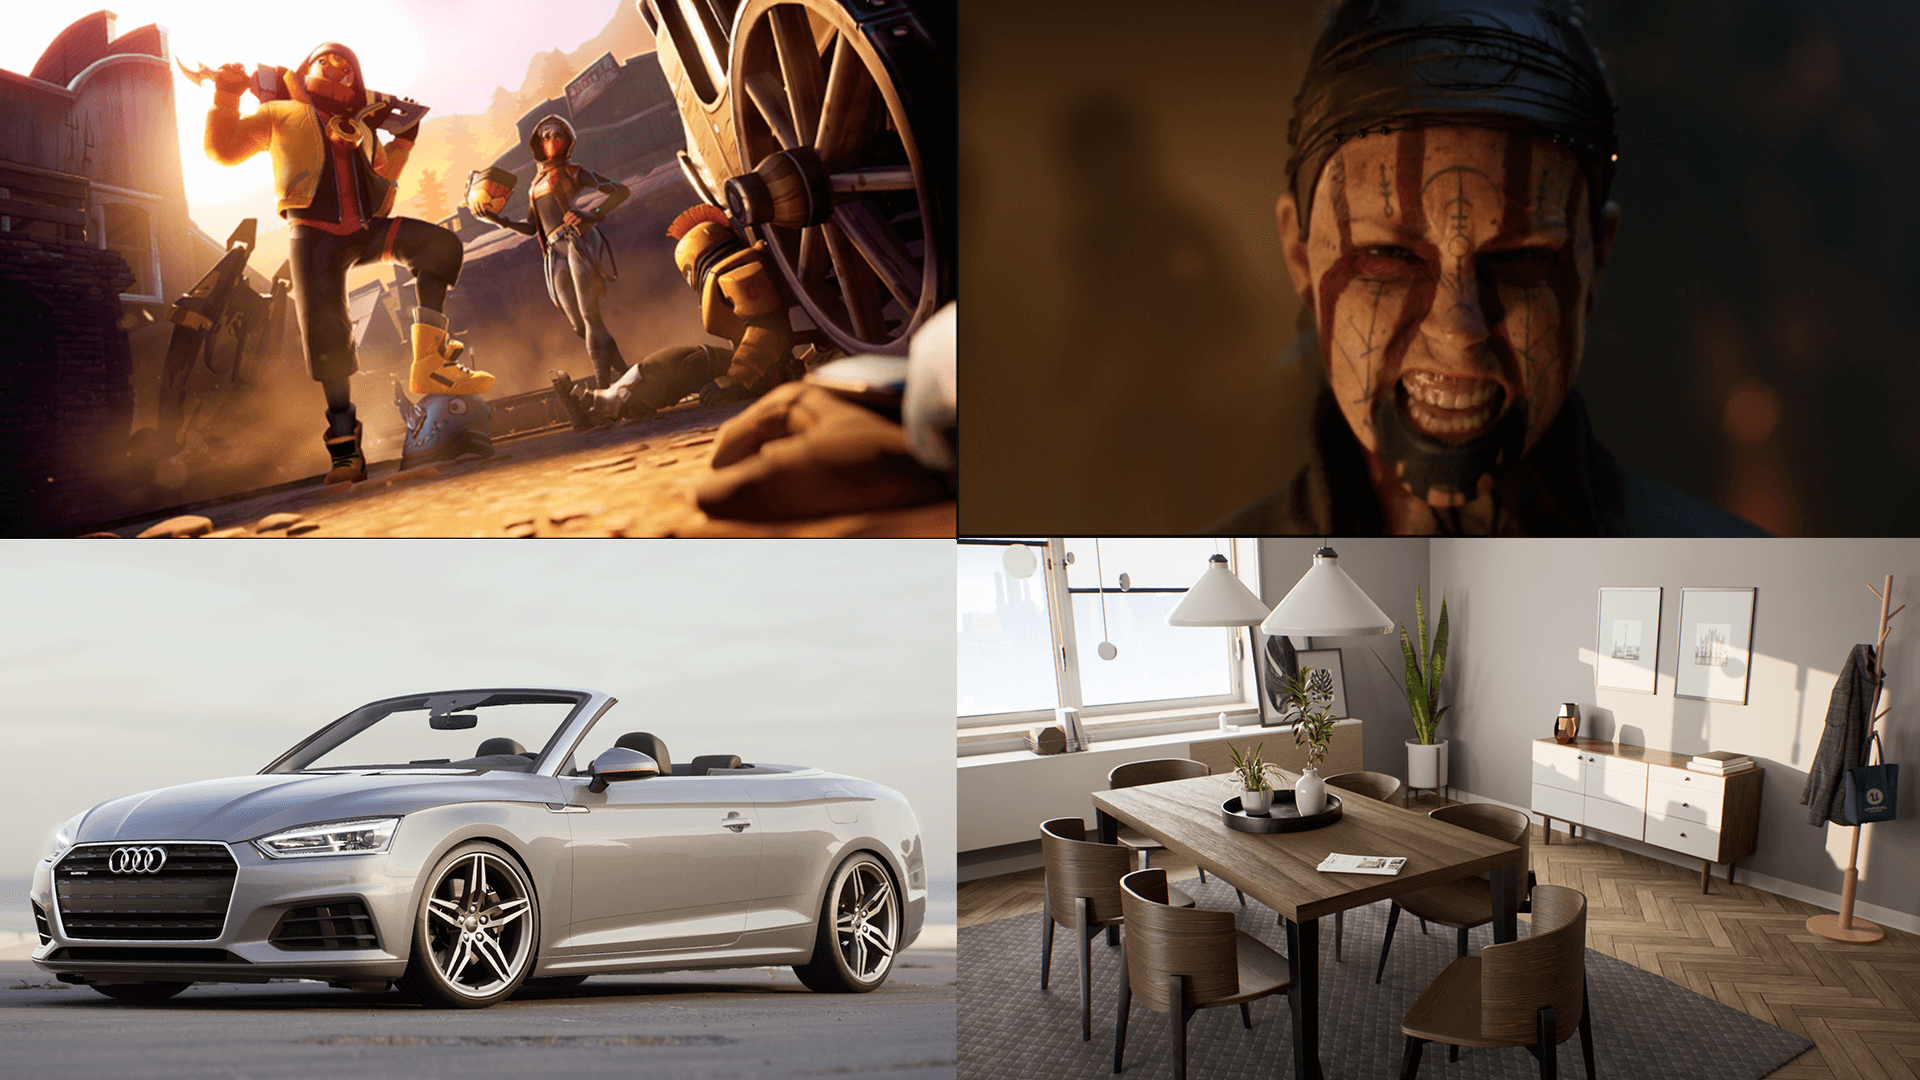 PlayStation 5 and Xbox Series X support comes to Unreal Engine 4.25